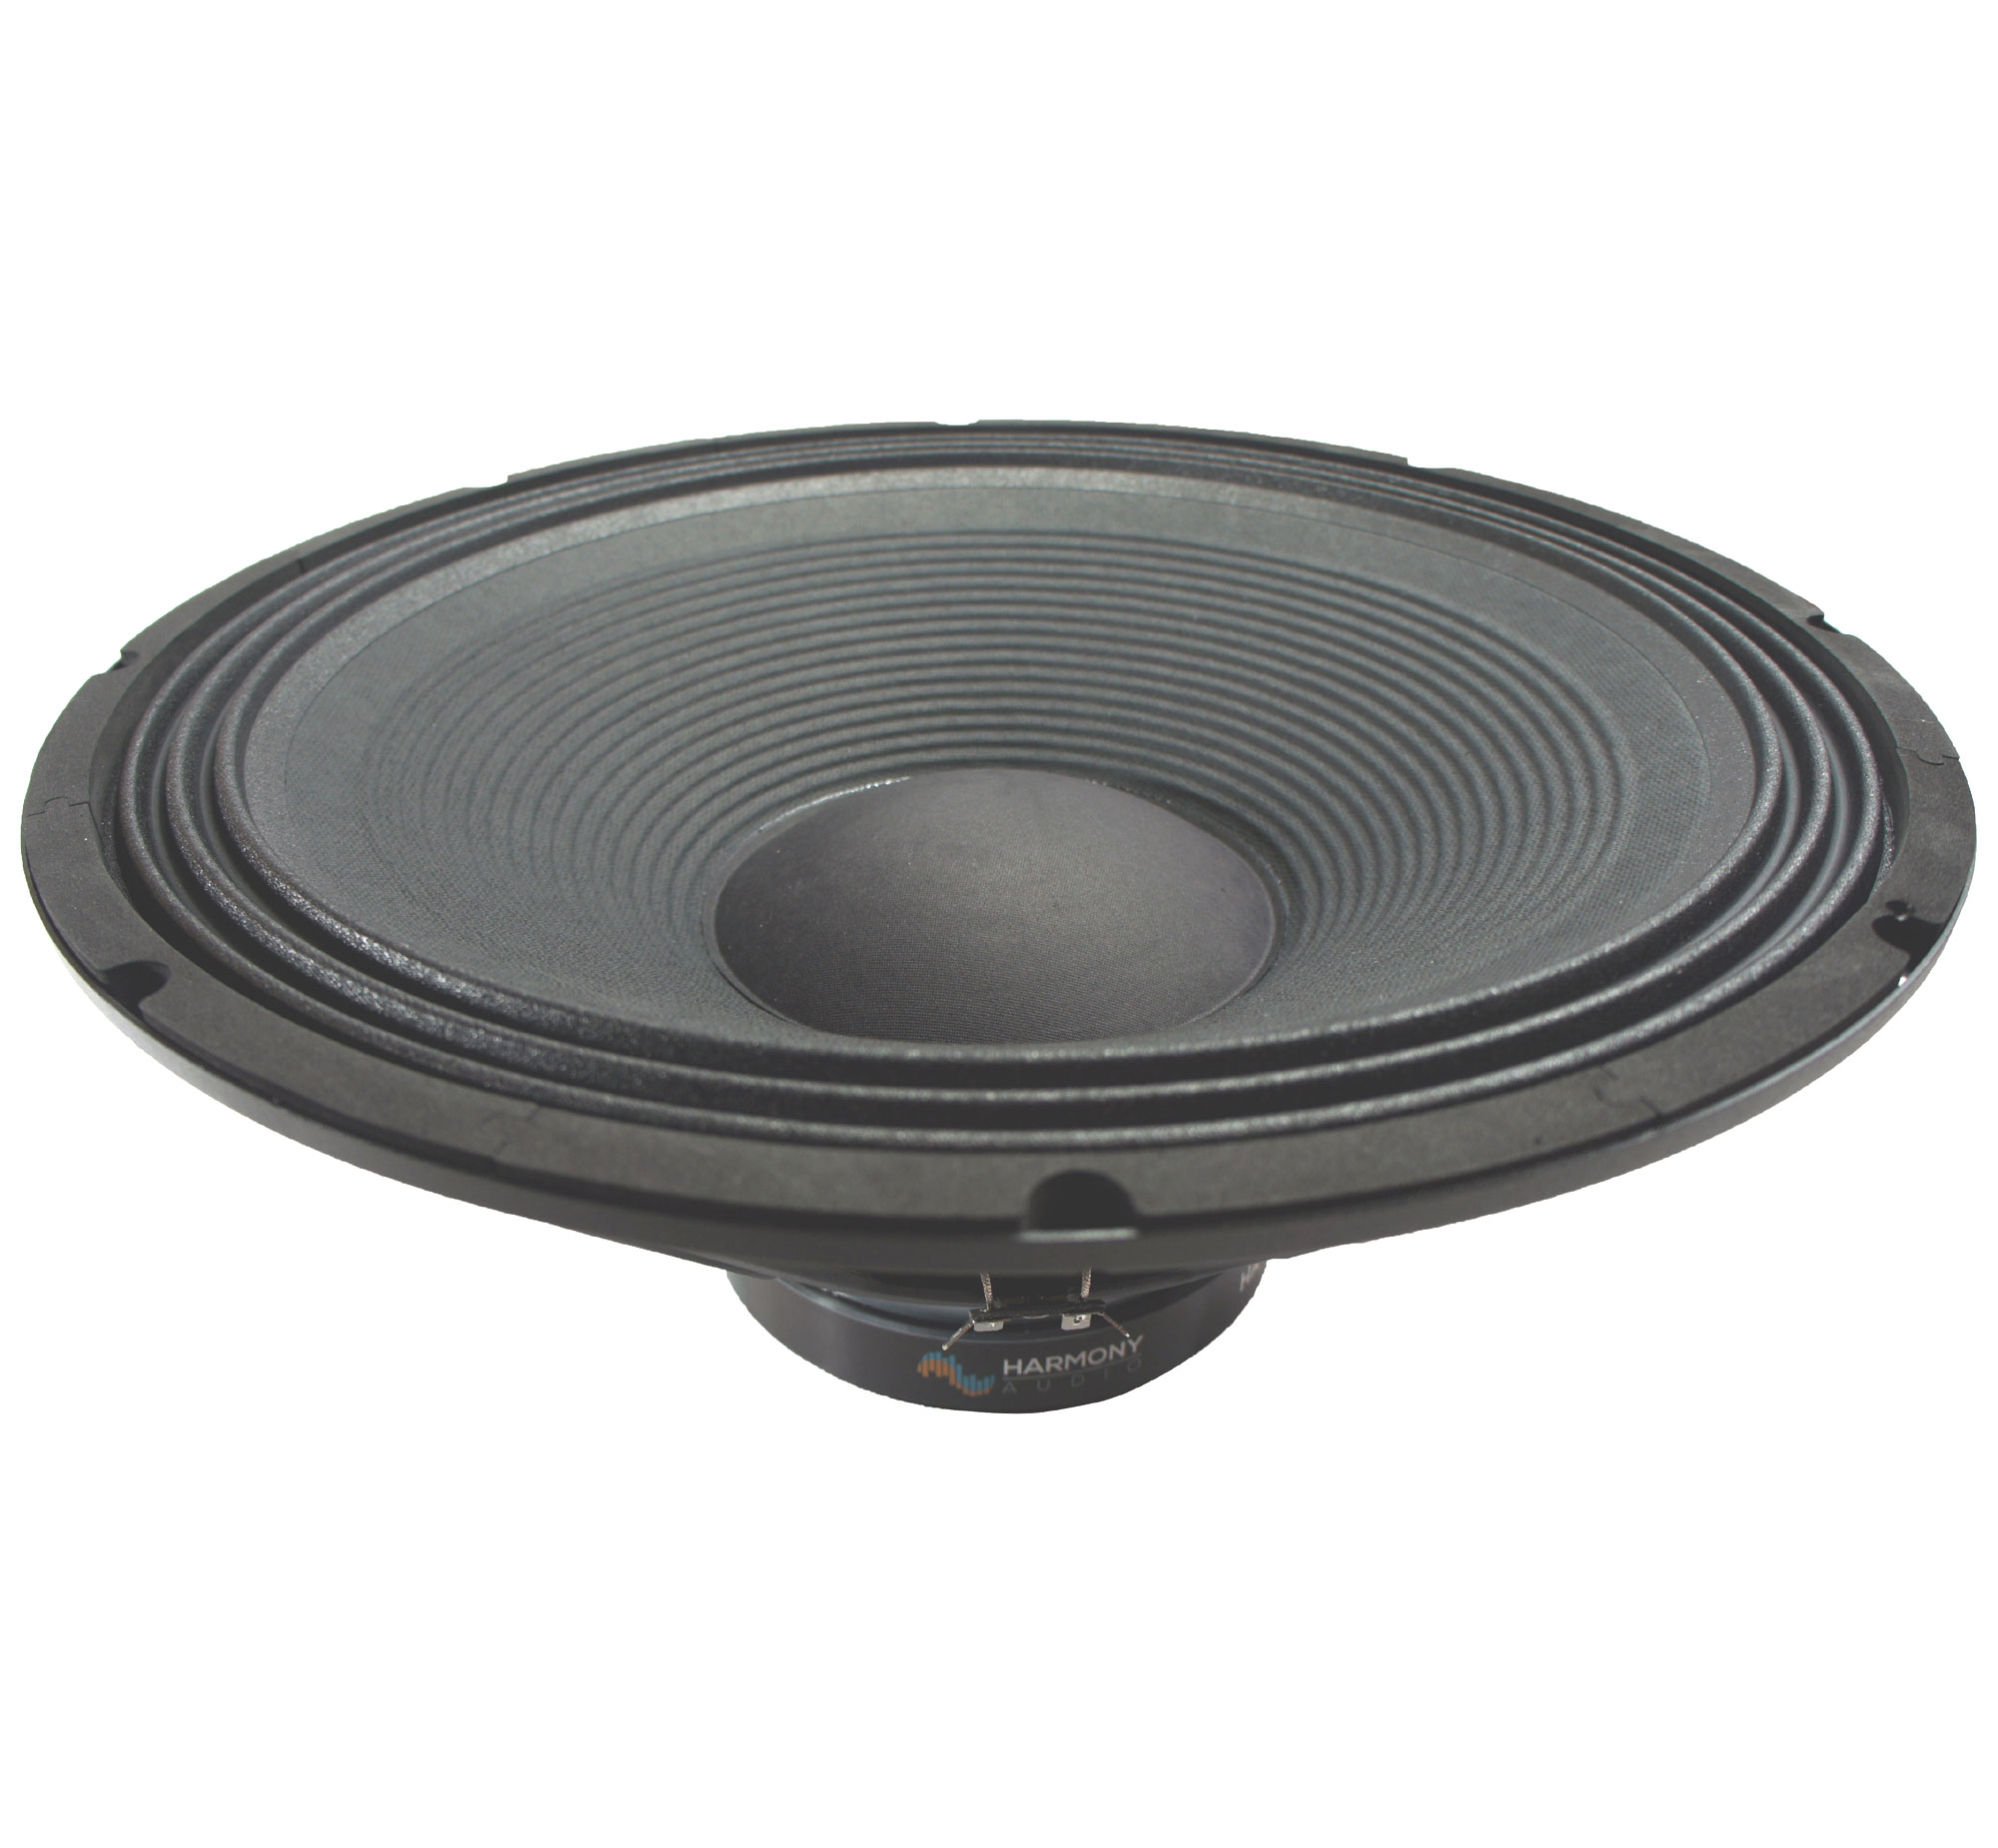 Harmony HA-P18WS16 Raw Replacement 18 Pro PA 1200W Subwoofer / Speaker 16 Ohm Woofer - 65oz Magnet